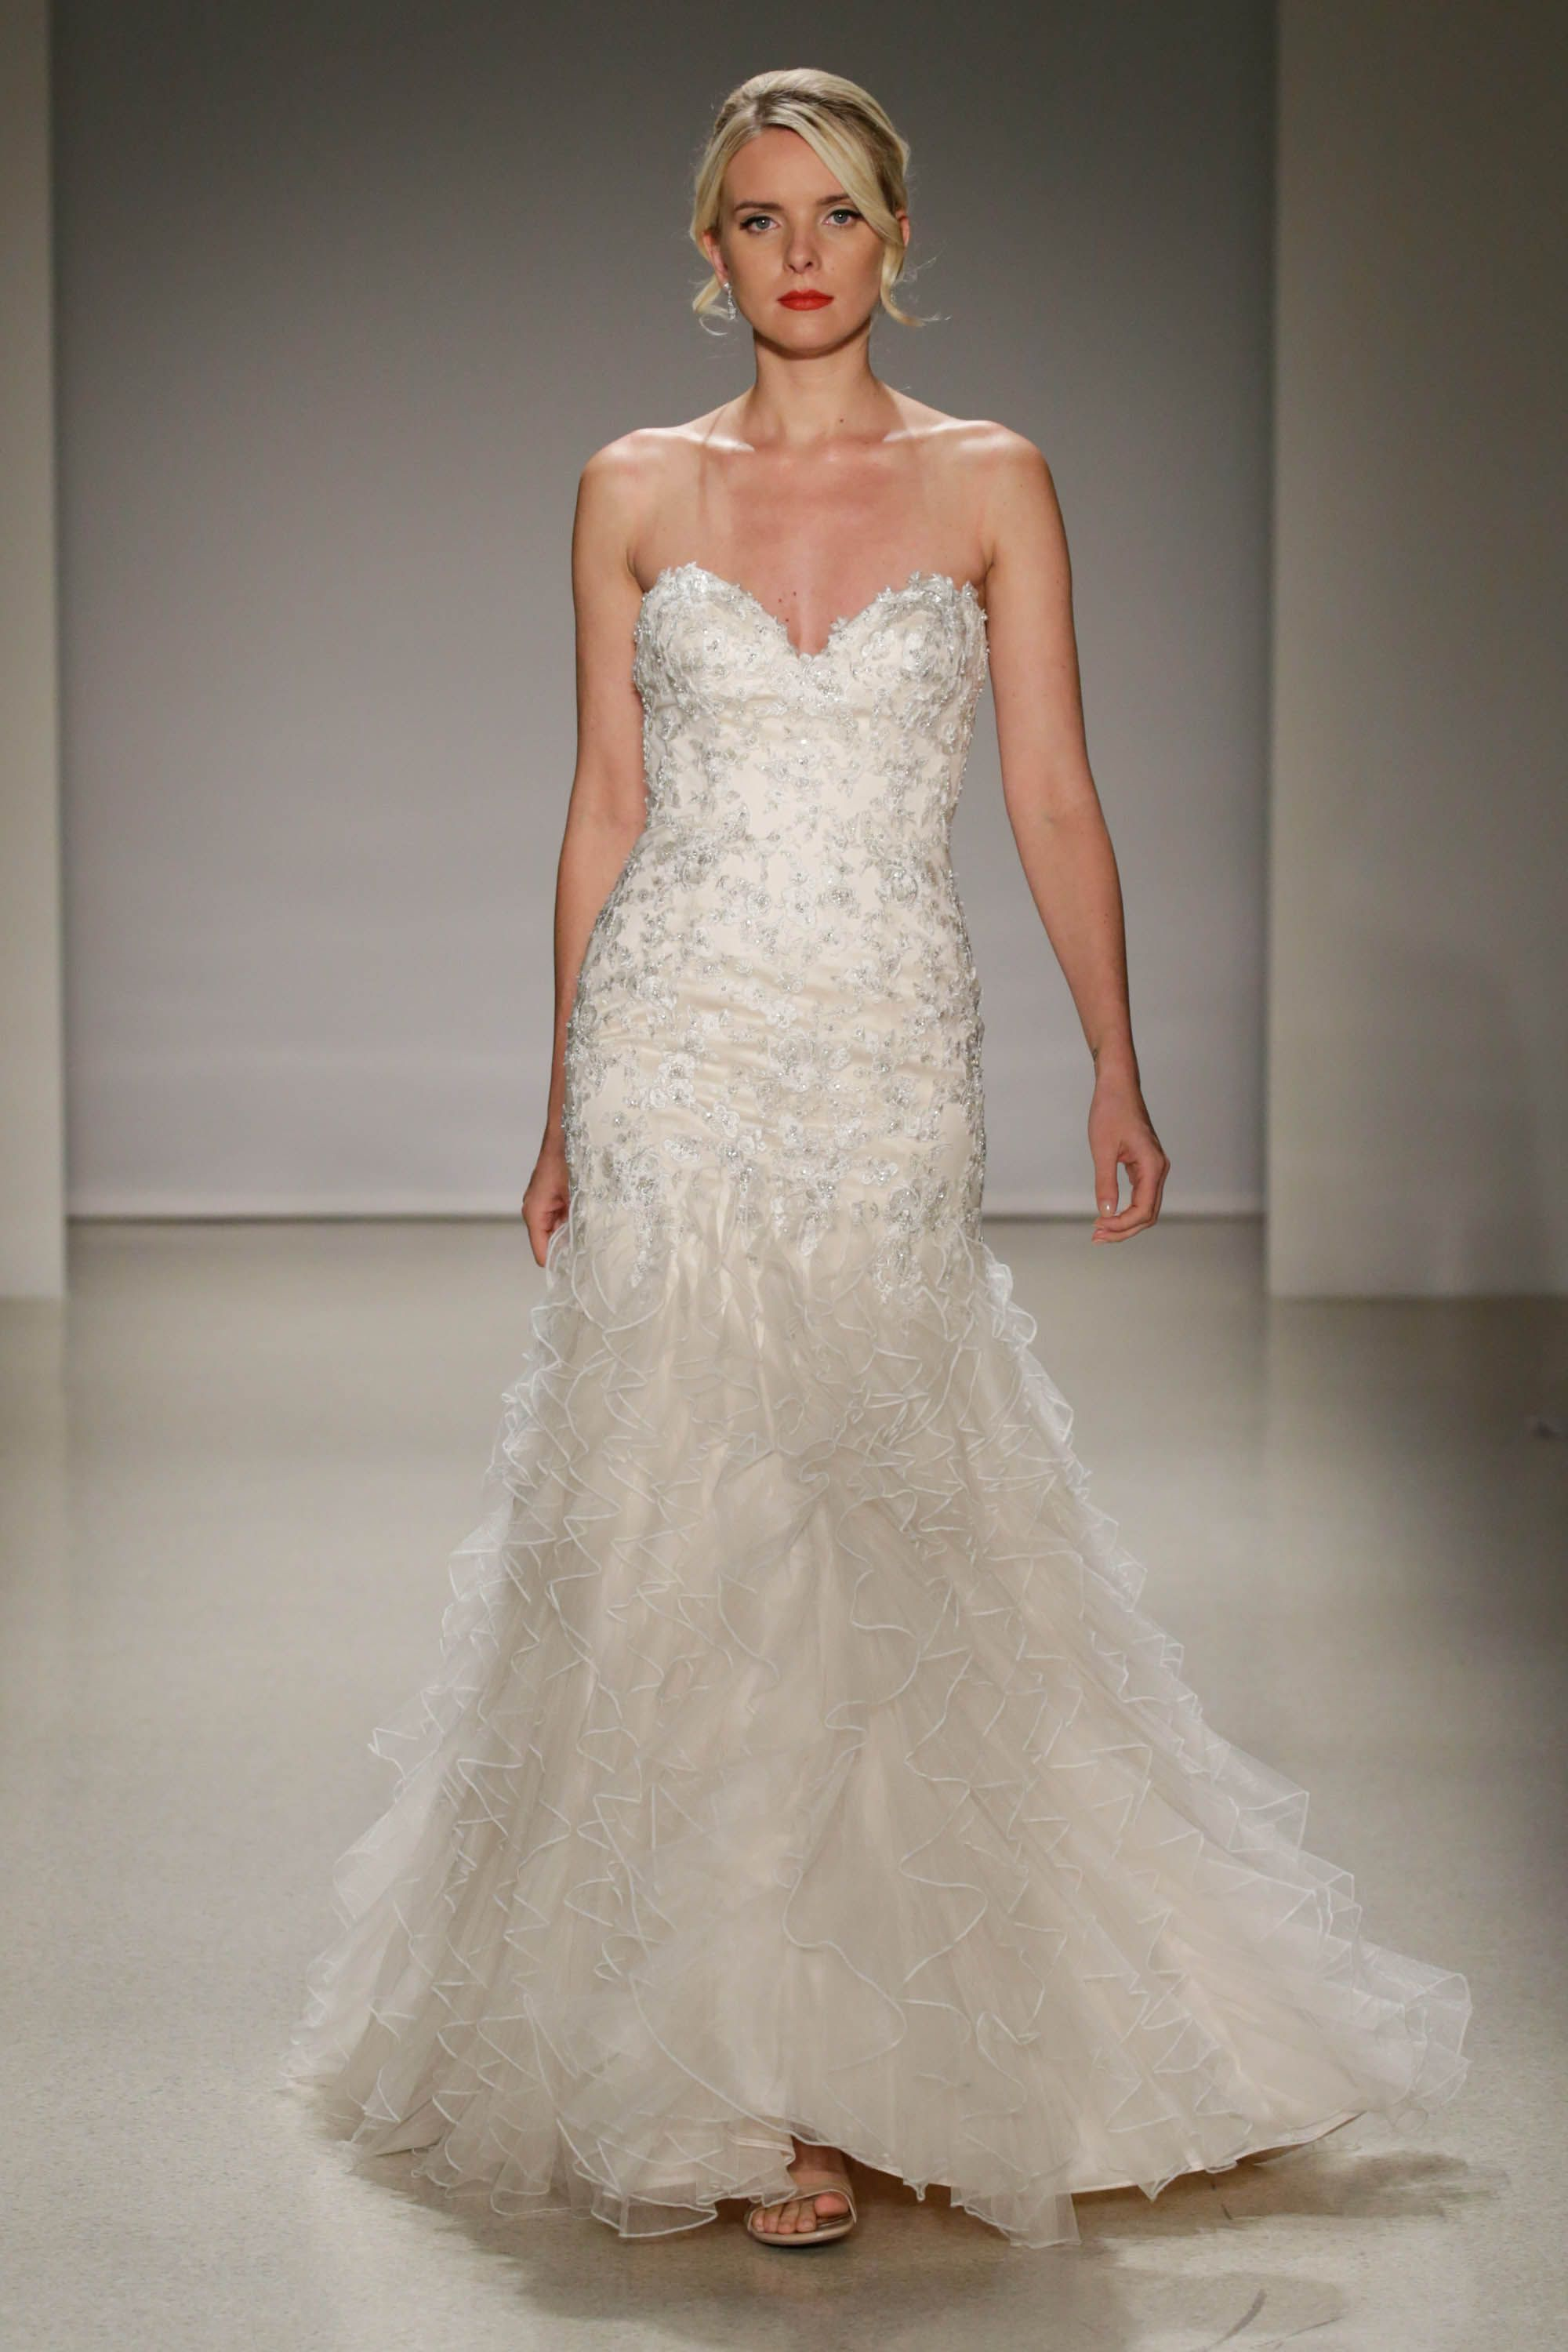 Wedding dresses with ruffles on skirt  Fit and flare wedding dress with ruffle skirt  wedding dresses